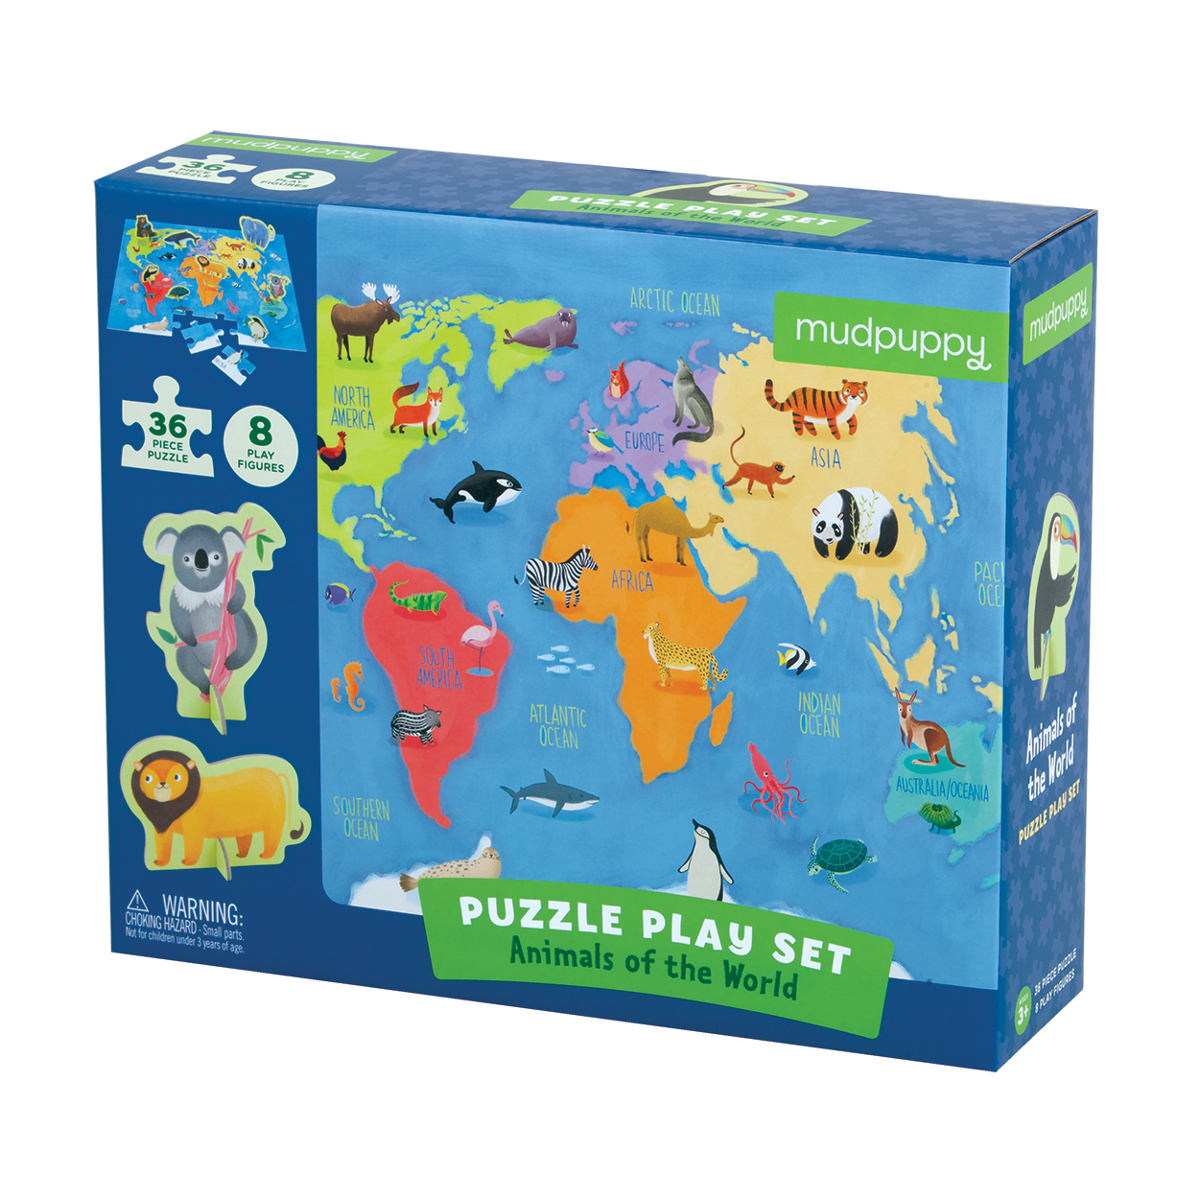 Animals of the World Puzzle Play Set Animals Jigsaw Puzzle